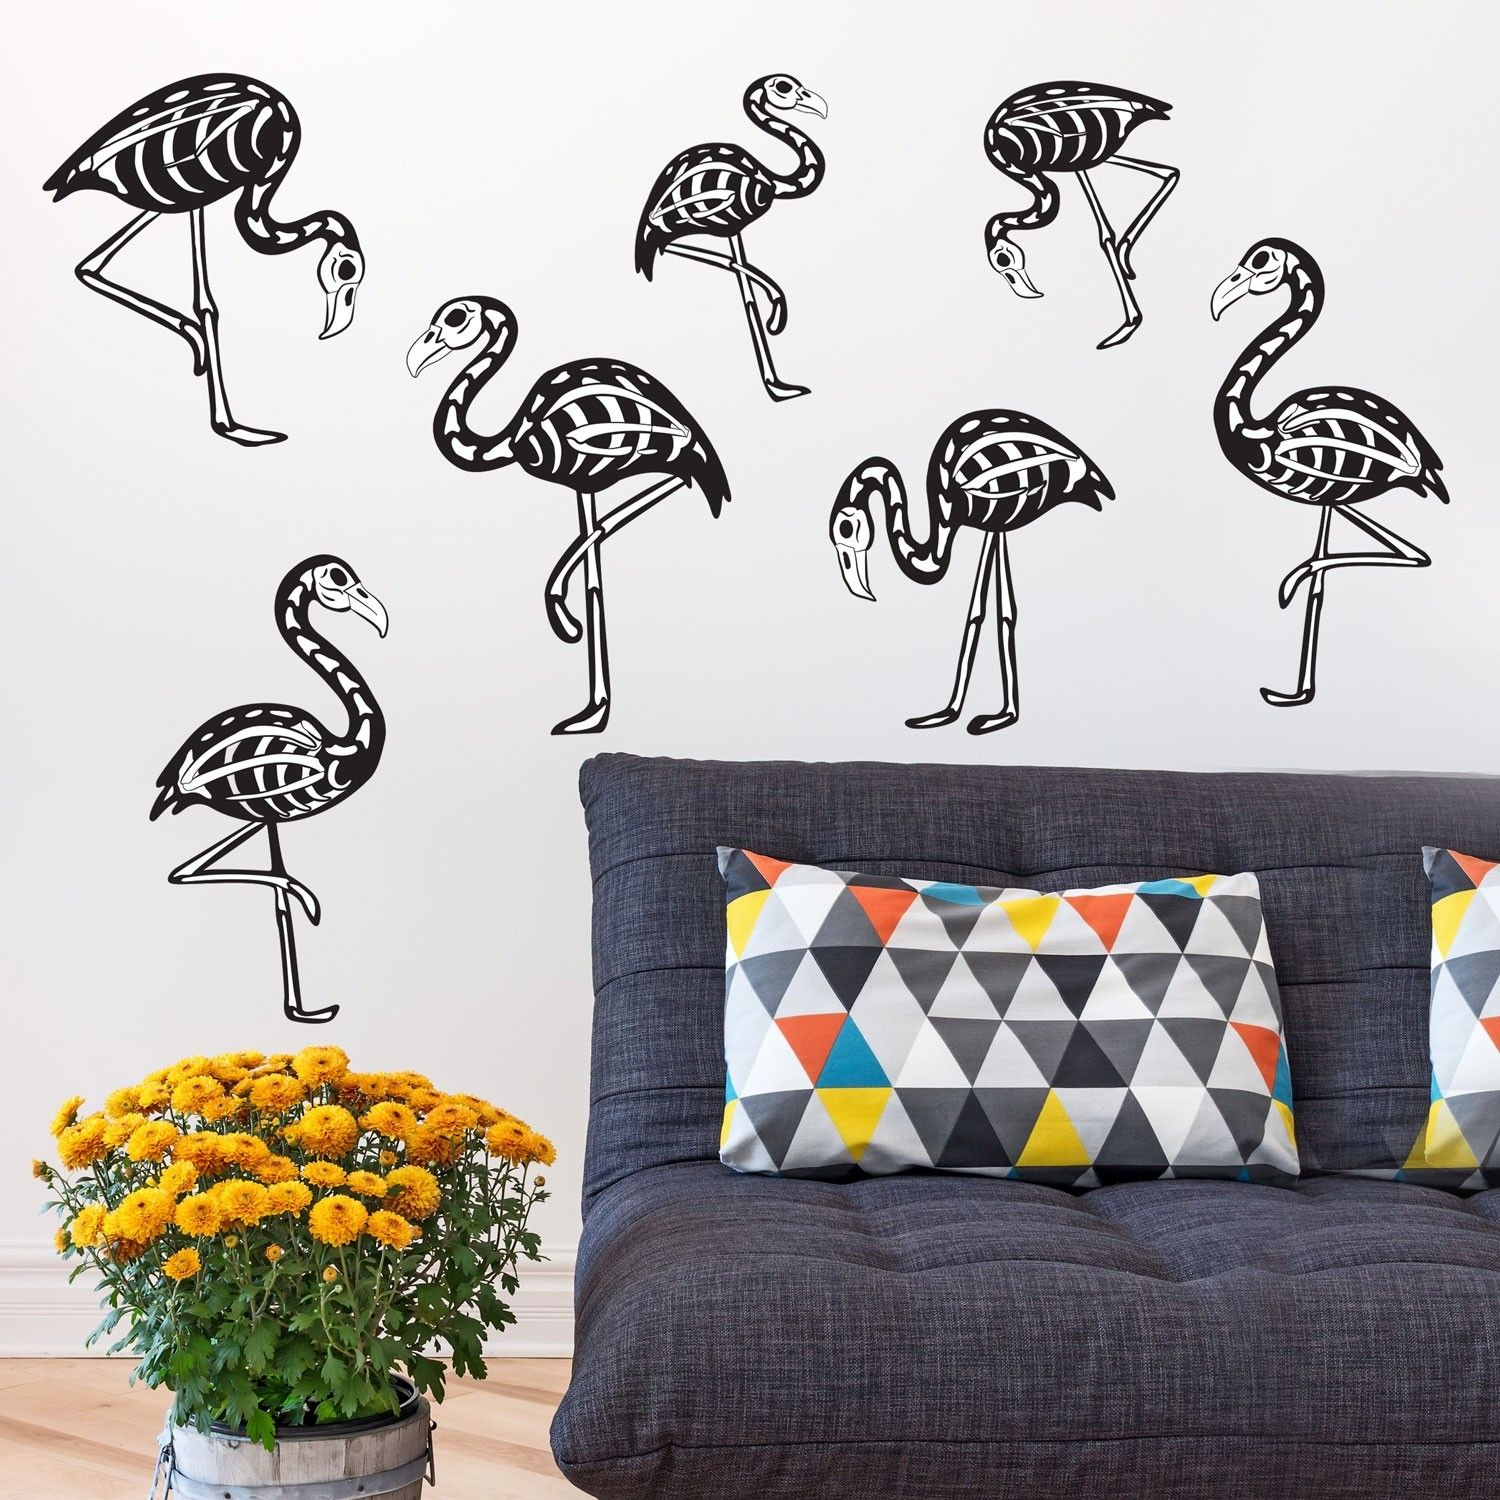 Pin by Marina Maguire on Halloween Wall decals, Flamingo